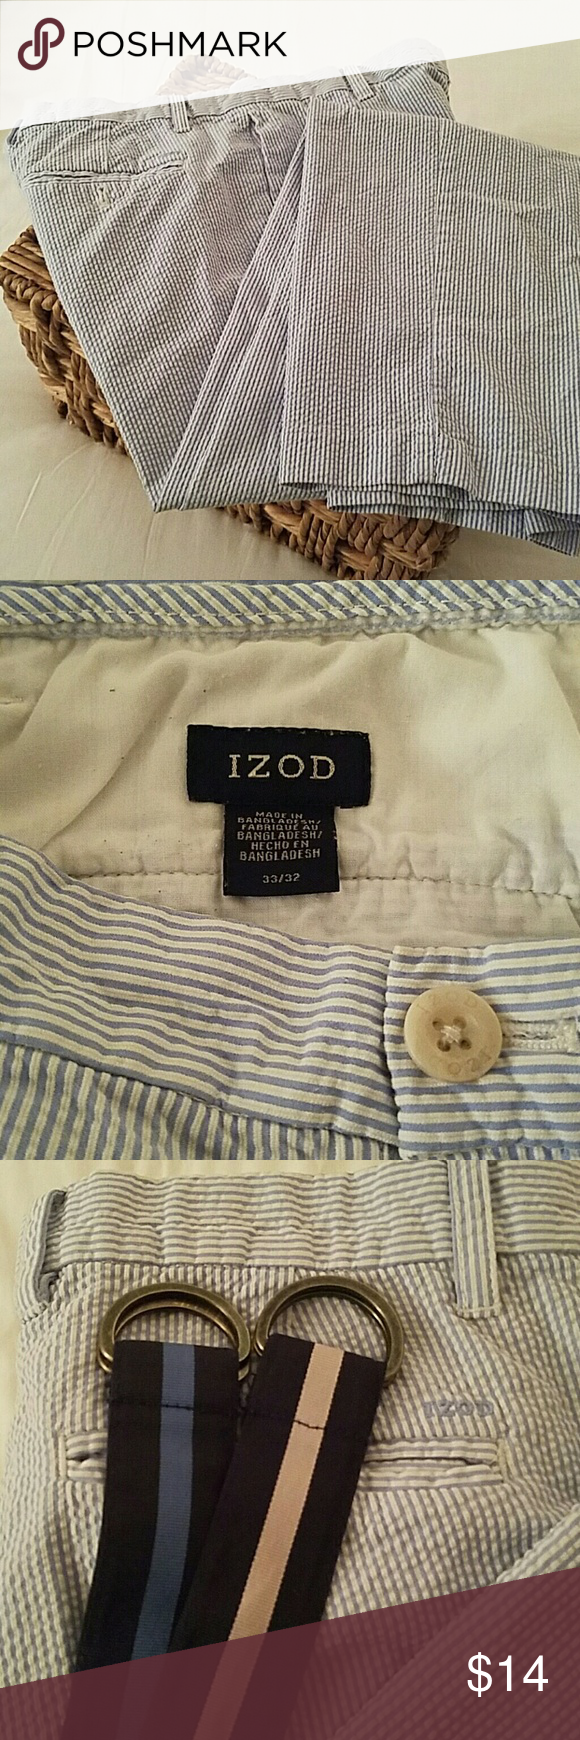 Izod seersucker slacks Sea foam blue and white, clean, bargain, smoke-free, worn 5 times, great deal, stainless, superior condition, great slacks for a day on the boat. Izod Pants